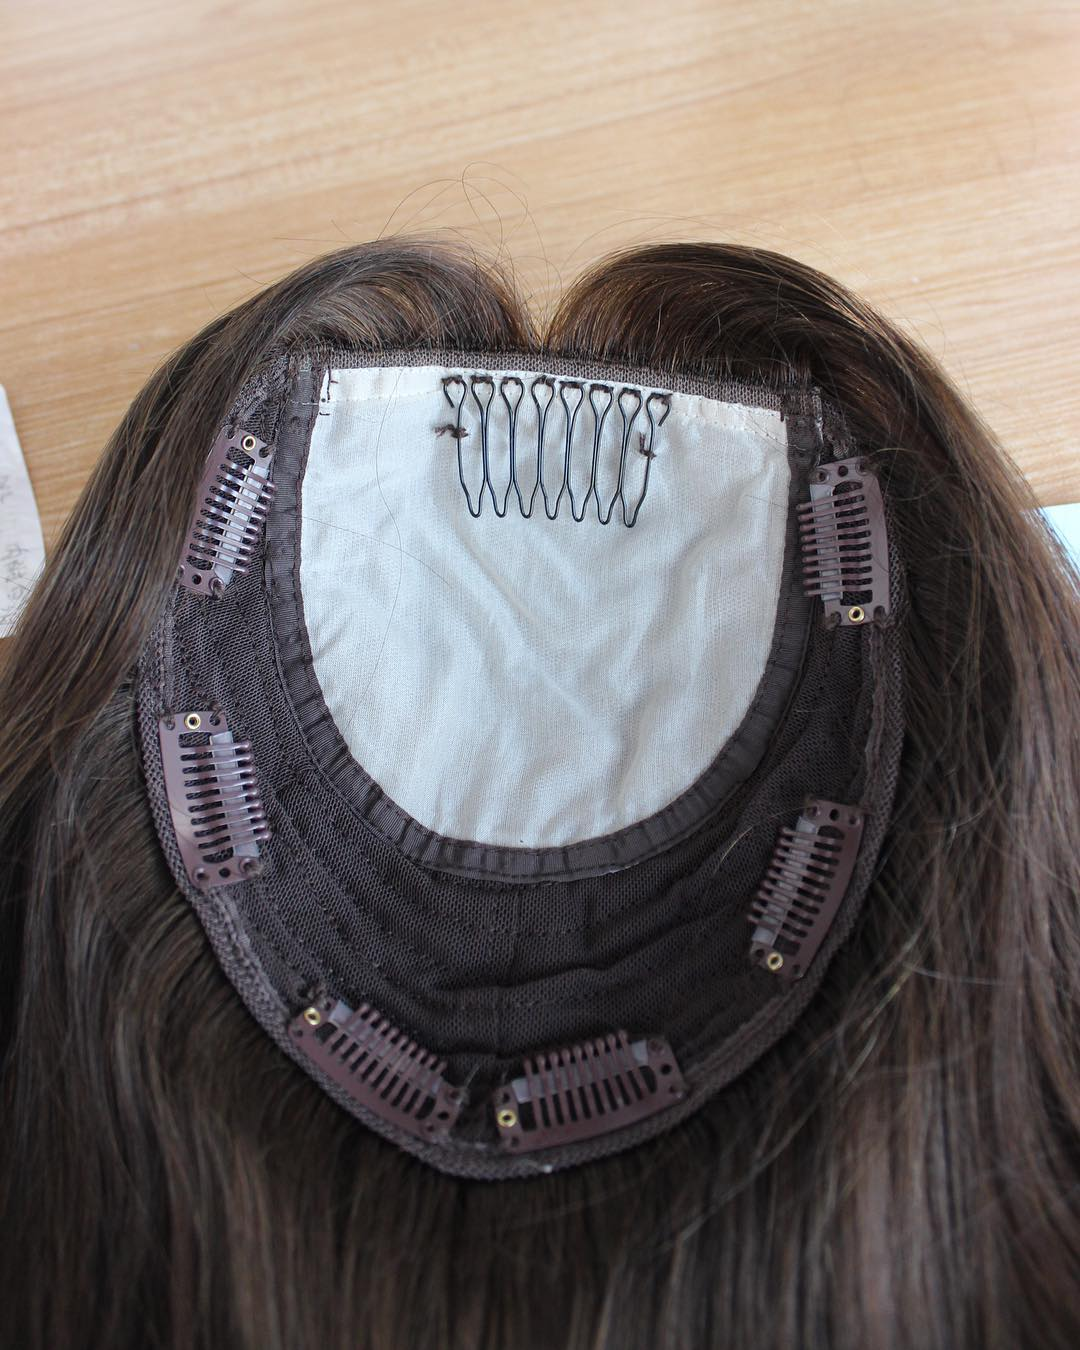 Qingdao Jewish Wig factory The Best Kippah Fall For Jewish Women